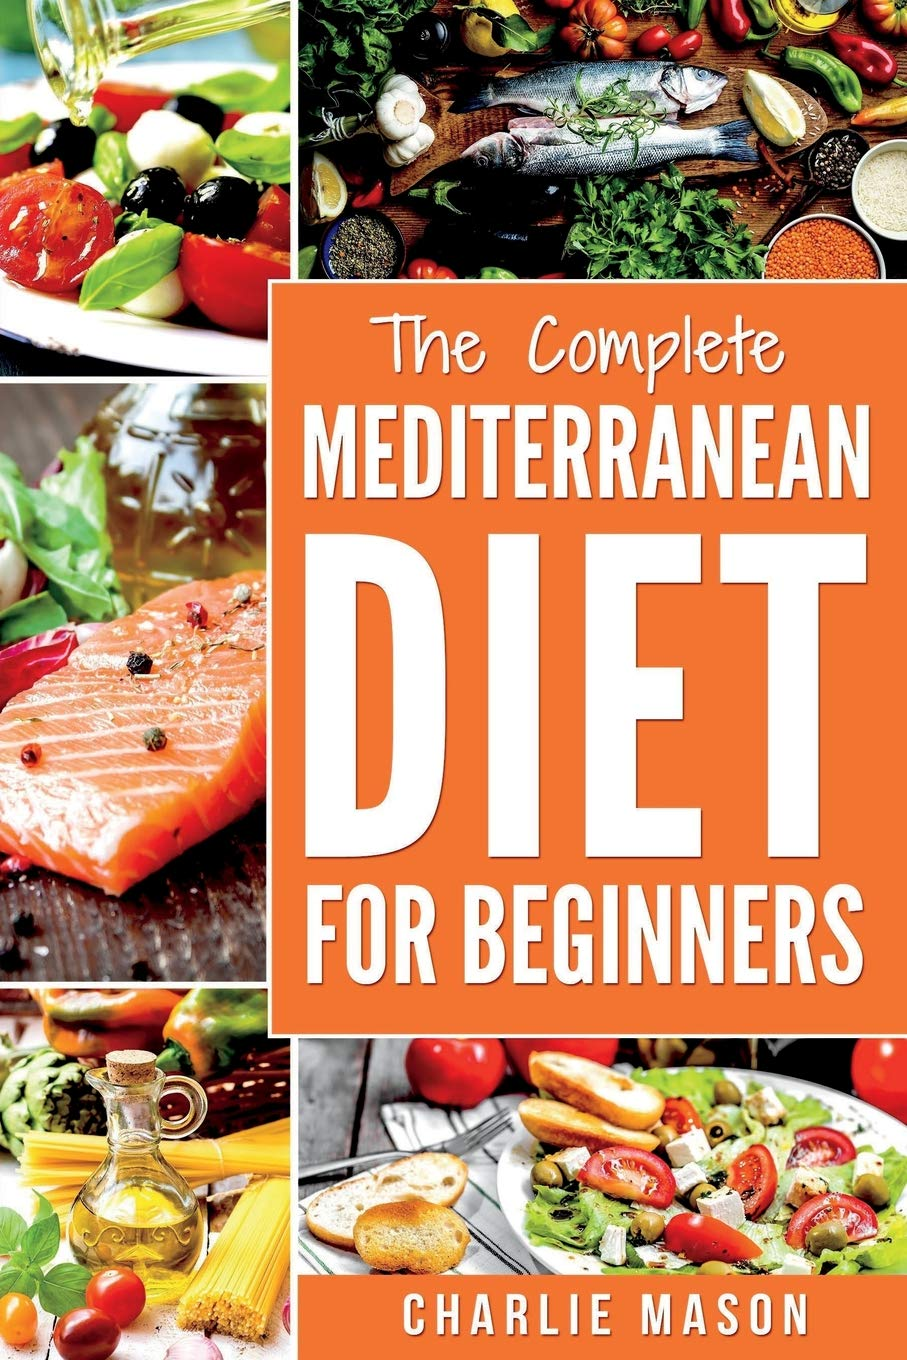 Mediterranean Diet: Mediterranean Diet For Beginners: Healthy Recipes Meal Cookbook Start Guide To Weight Loss With Easy Recipes Meal Plans: Weight ... Weight,  Loss, Healthy, Beginners, Complete) PDF